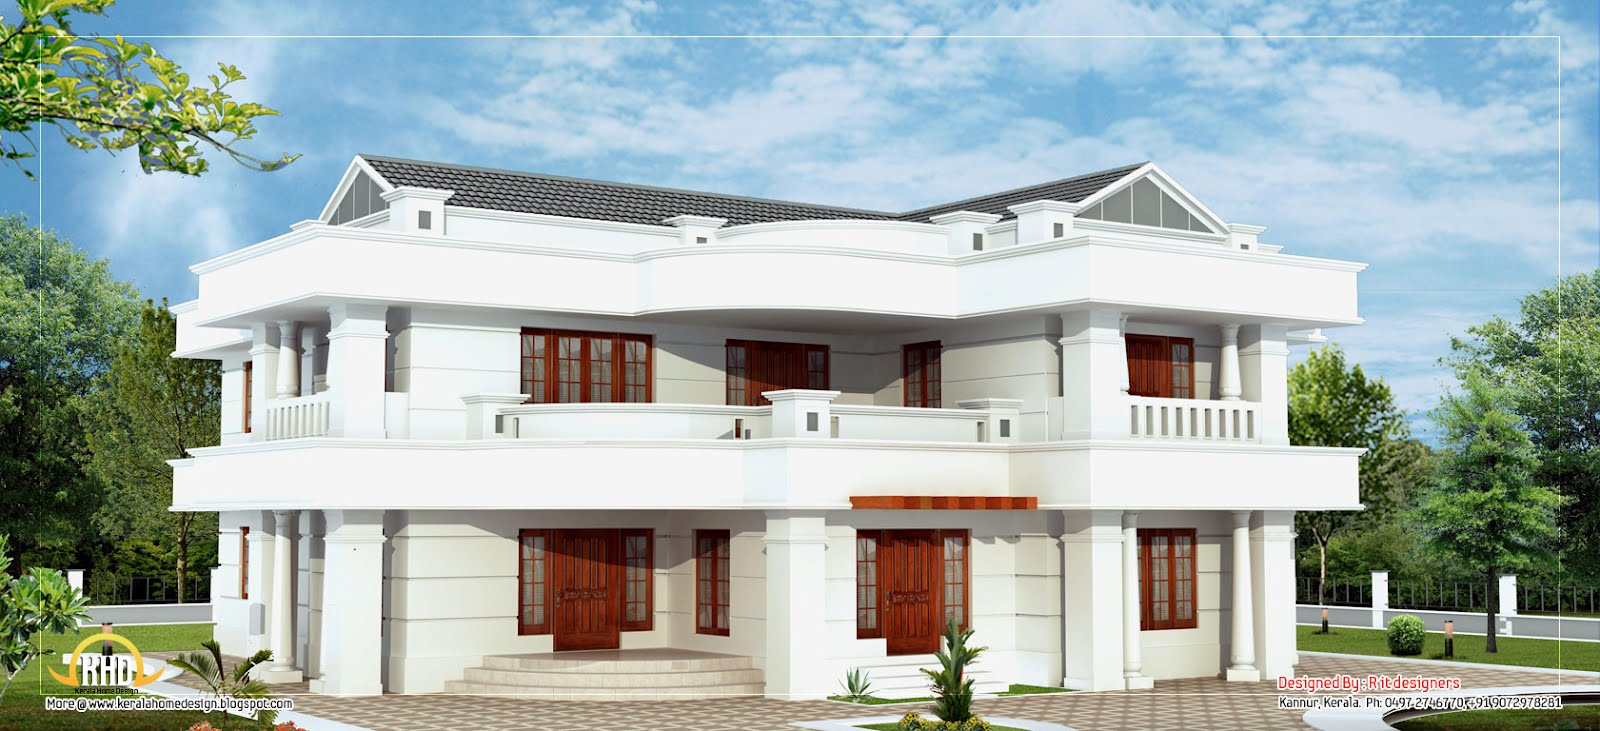 beautiful 2 story house elevation 3665 sq ft indian